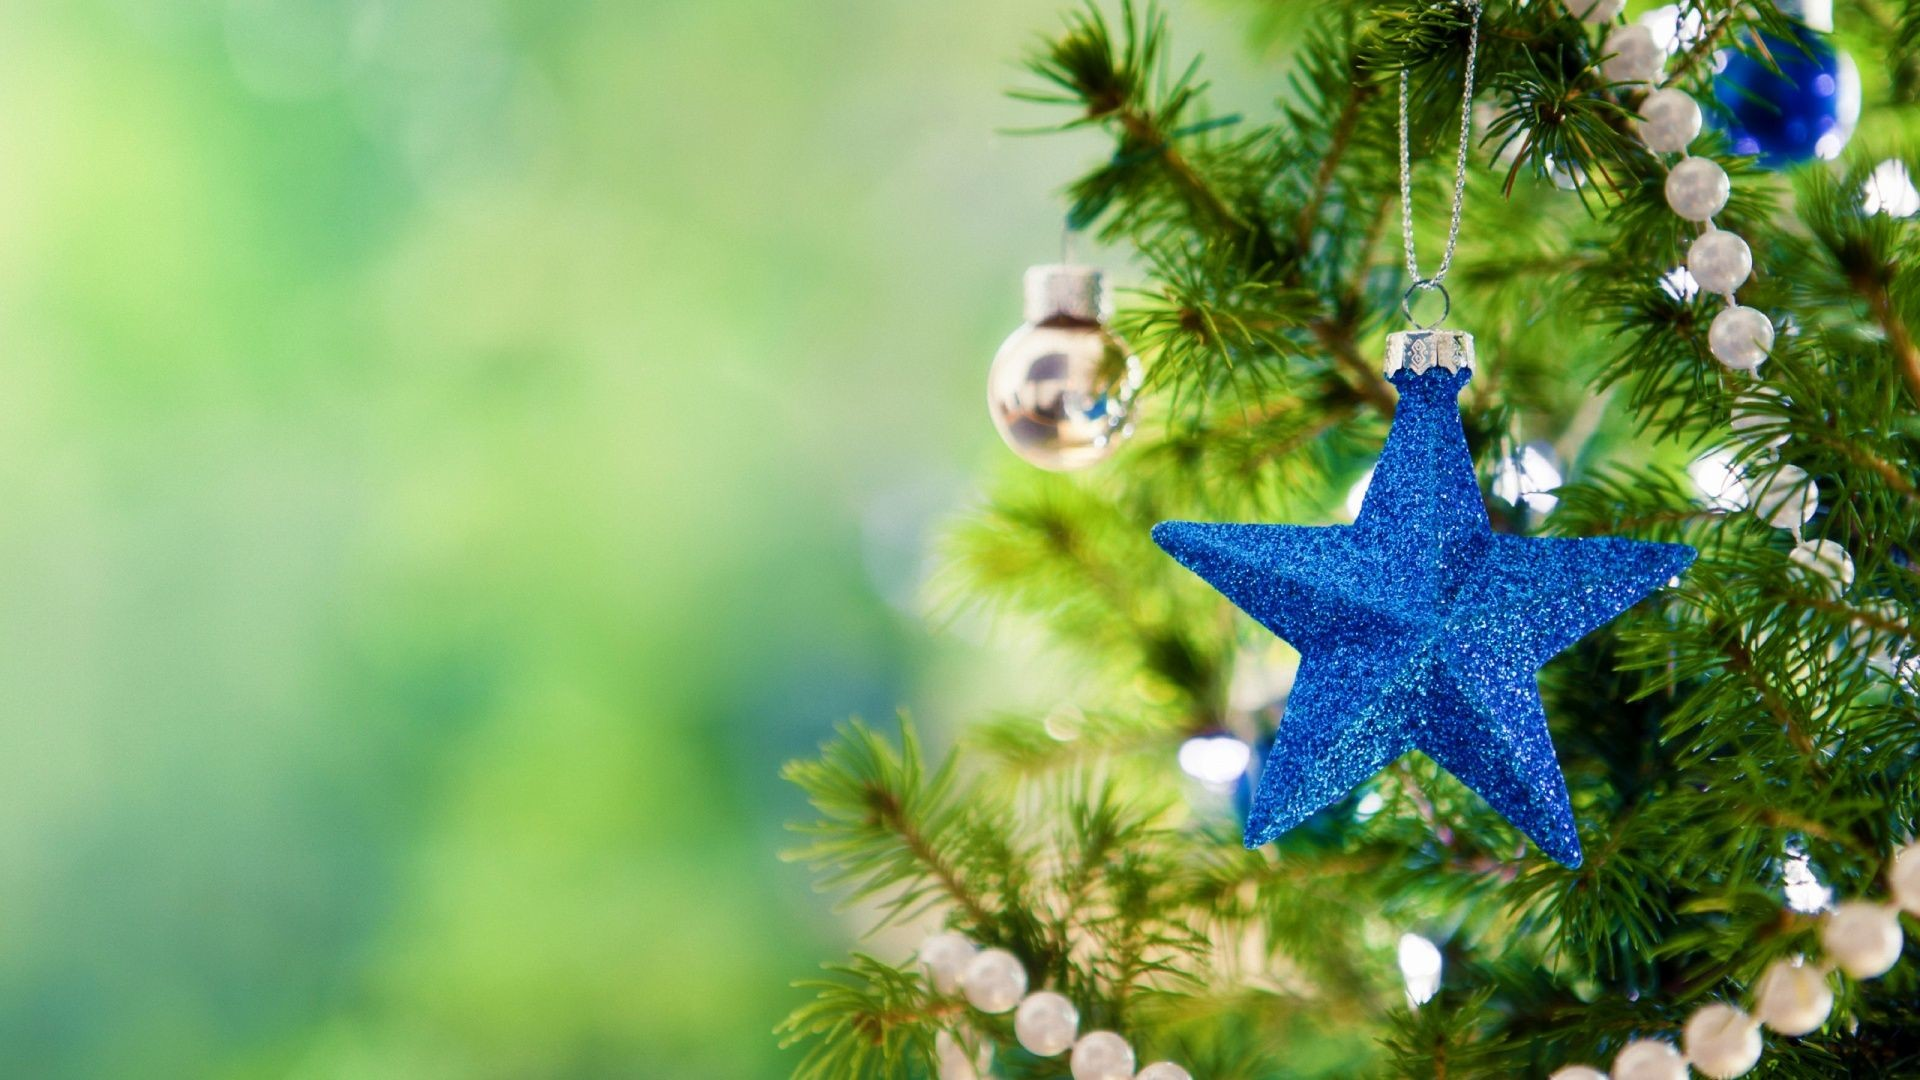 Res: 1920x1080, Widescreen Wallpapers: Christmas HD, - Wallpapers and Pictures Graphics for  desktop and mobile